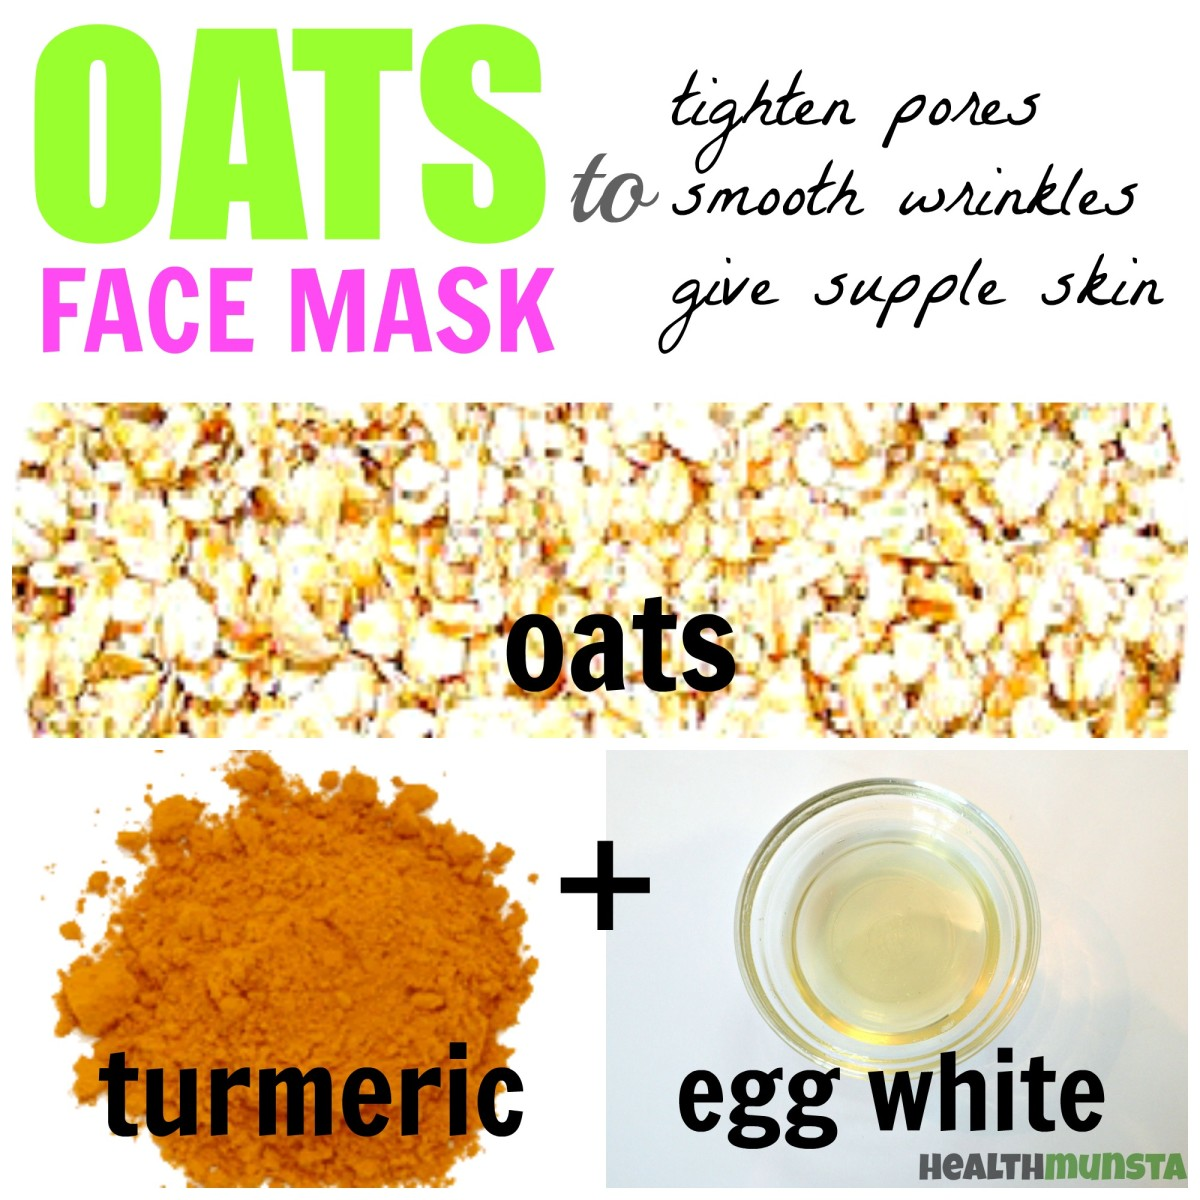 Tighten large pores using this easy anti-aging oats face mask that fights wrinkles and creates youthful supple skin.